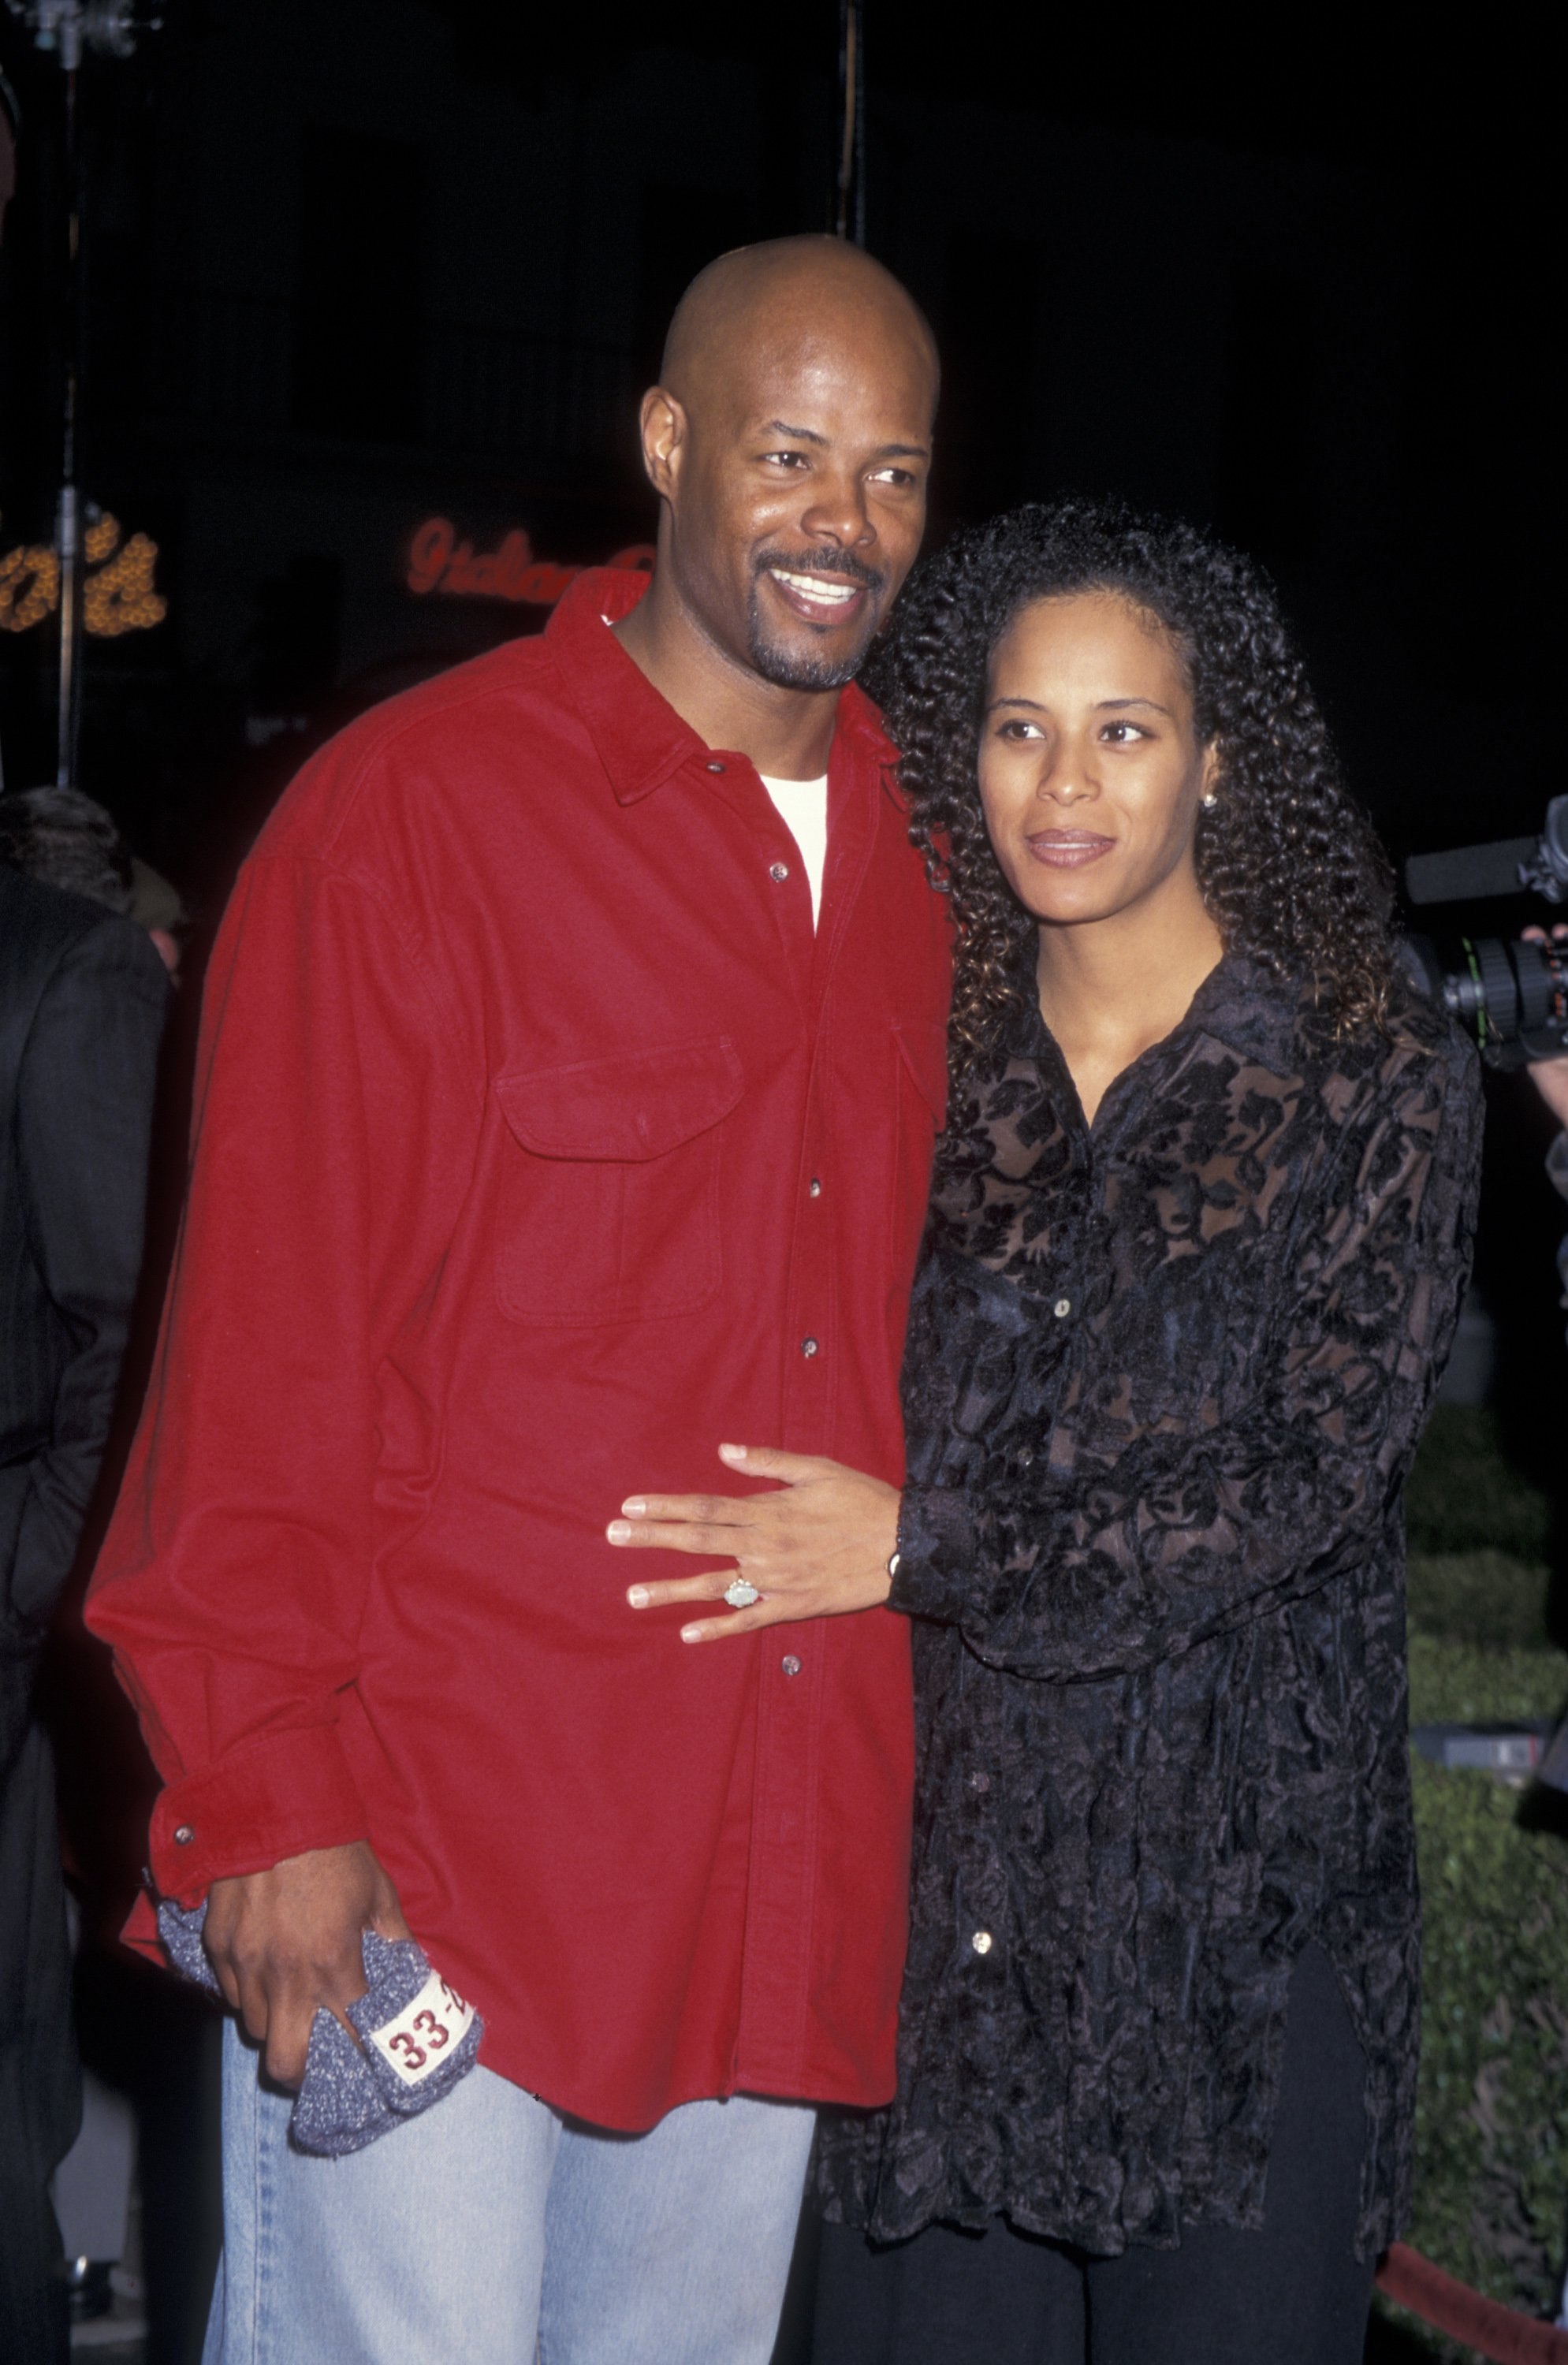 Keenen Ivory Wayans and wife Daphne Polk attending the world premiere of 'Executive Decision' on March 11, 1996   Photo: Getty Images